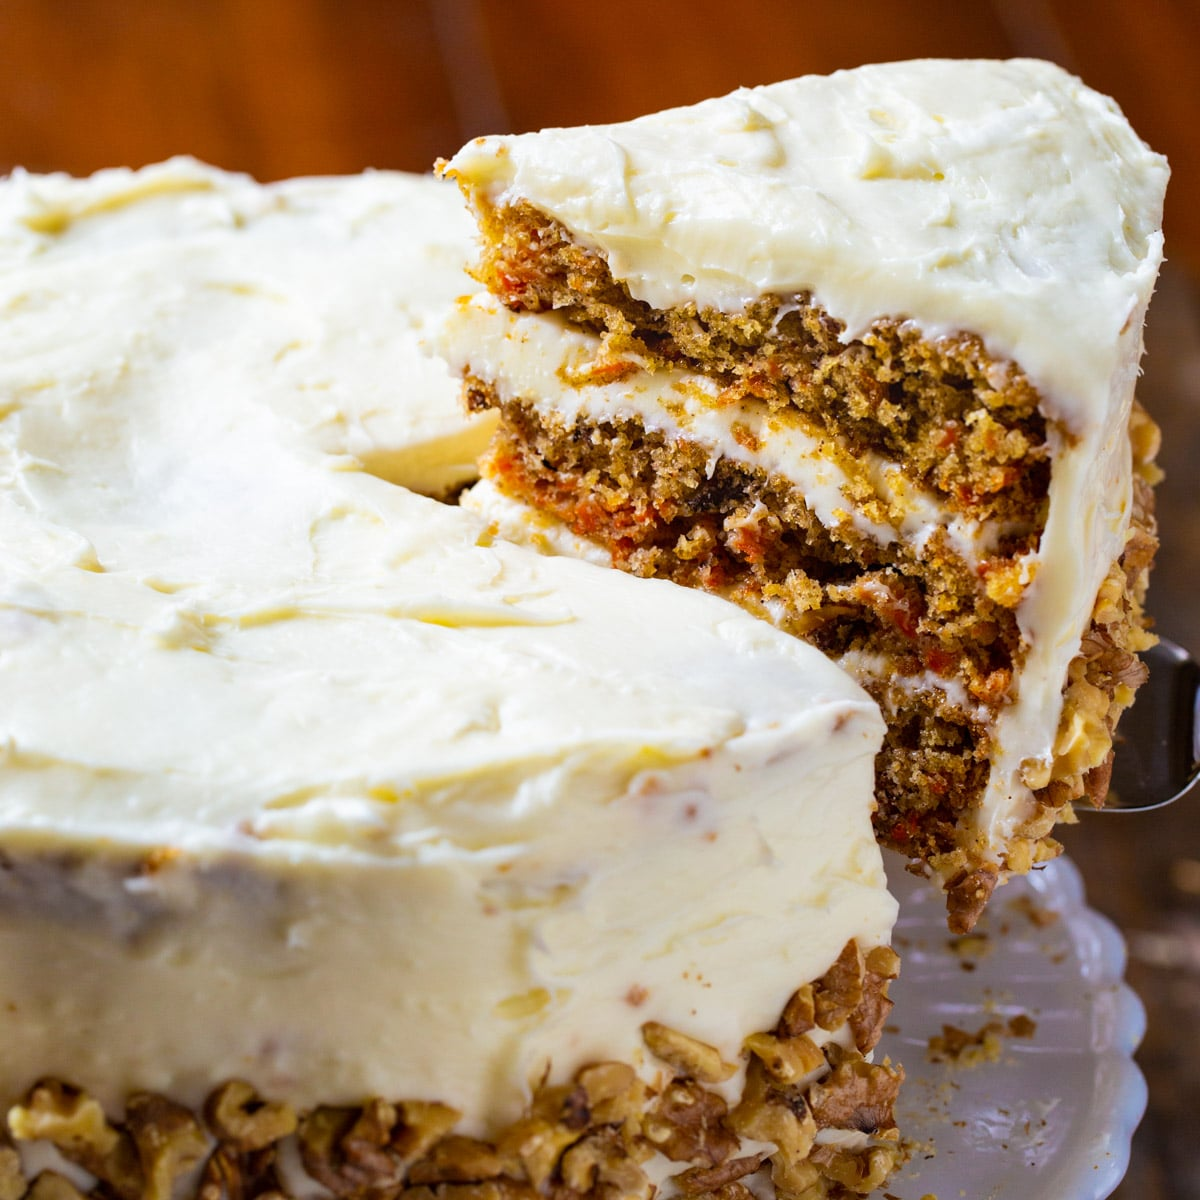 Slice of Mama Dip's CArrot Cake being lifted up.